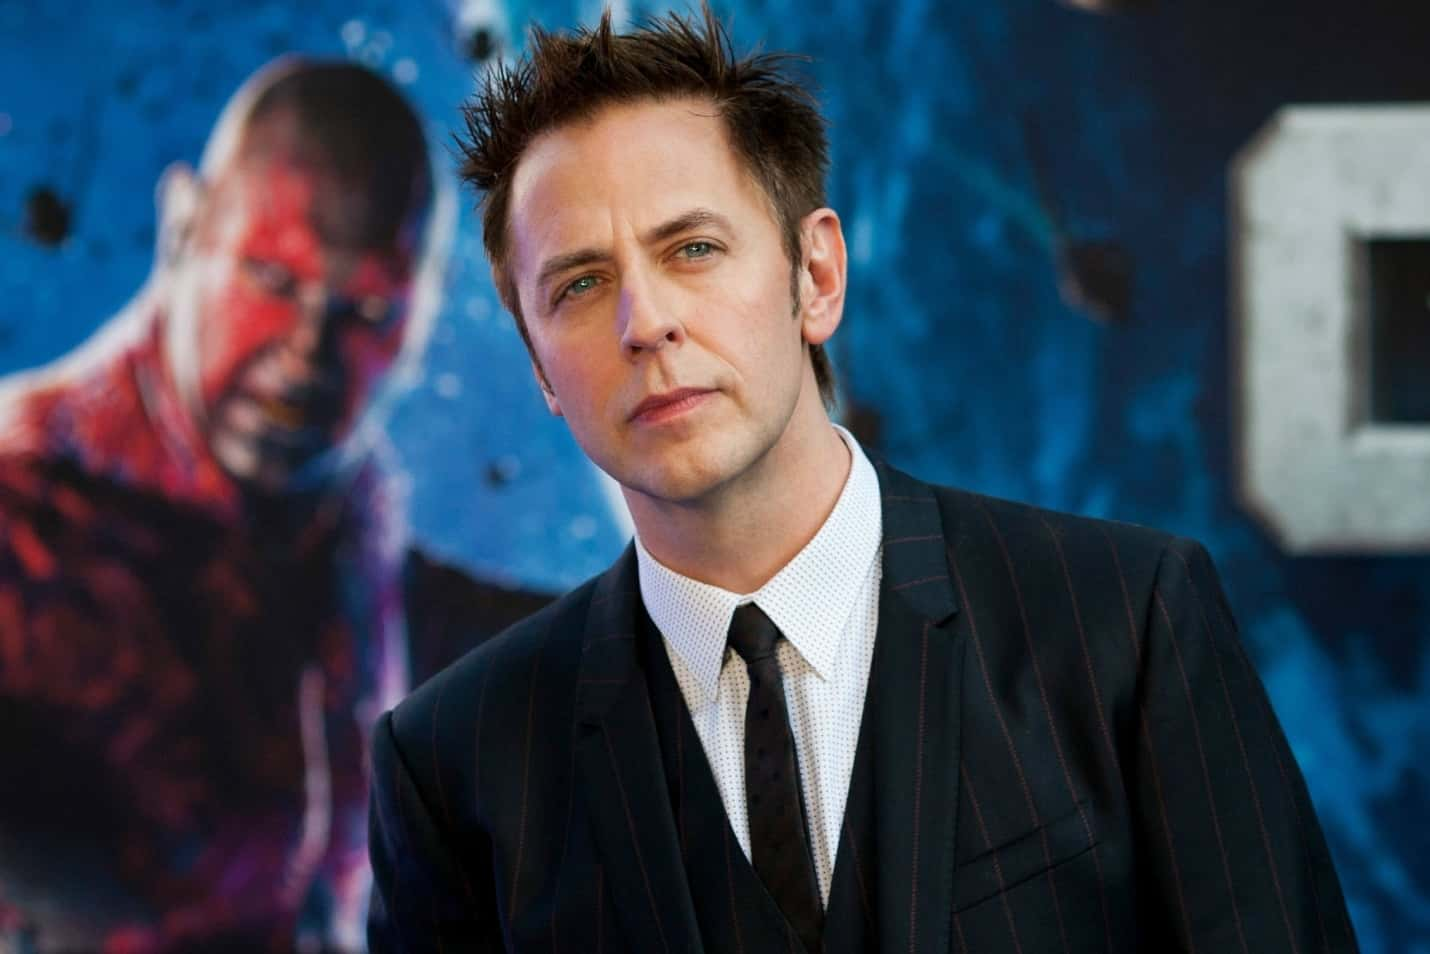 Disney James Gunn Shouldn't Be Rehired for GOTG